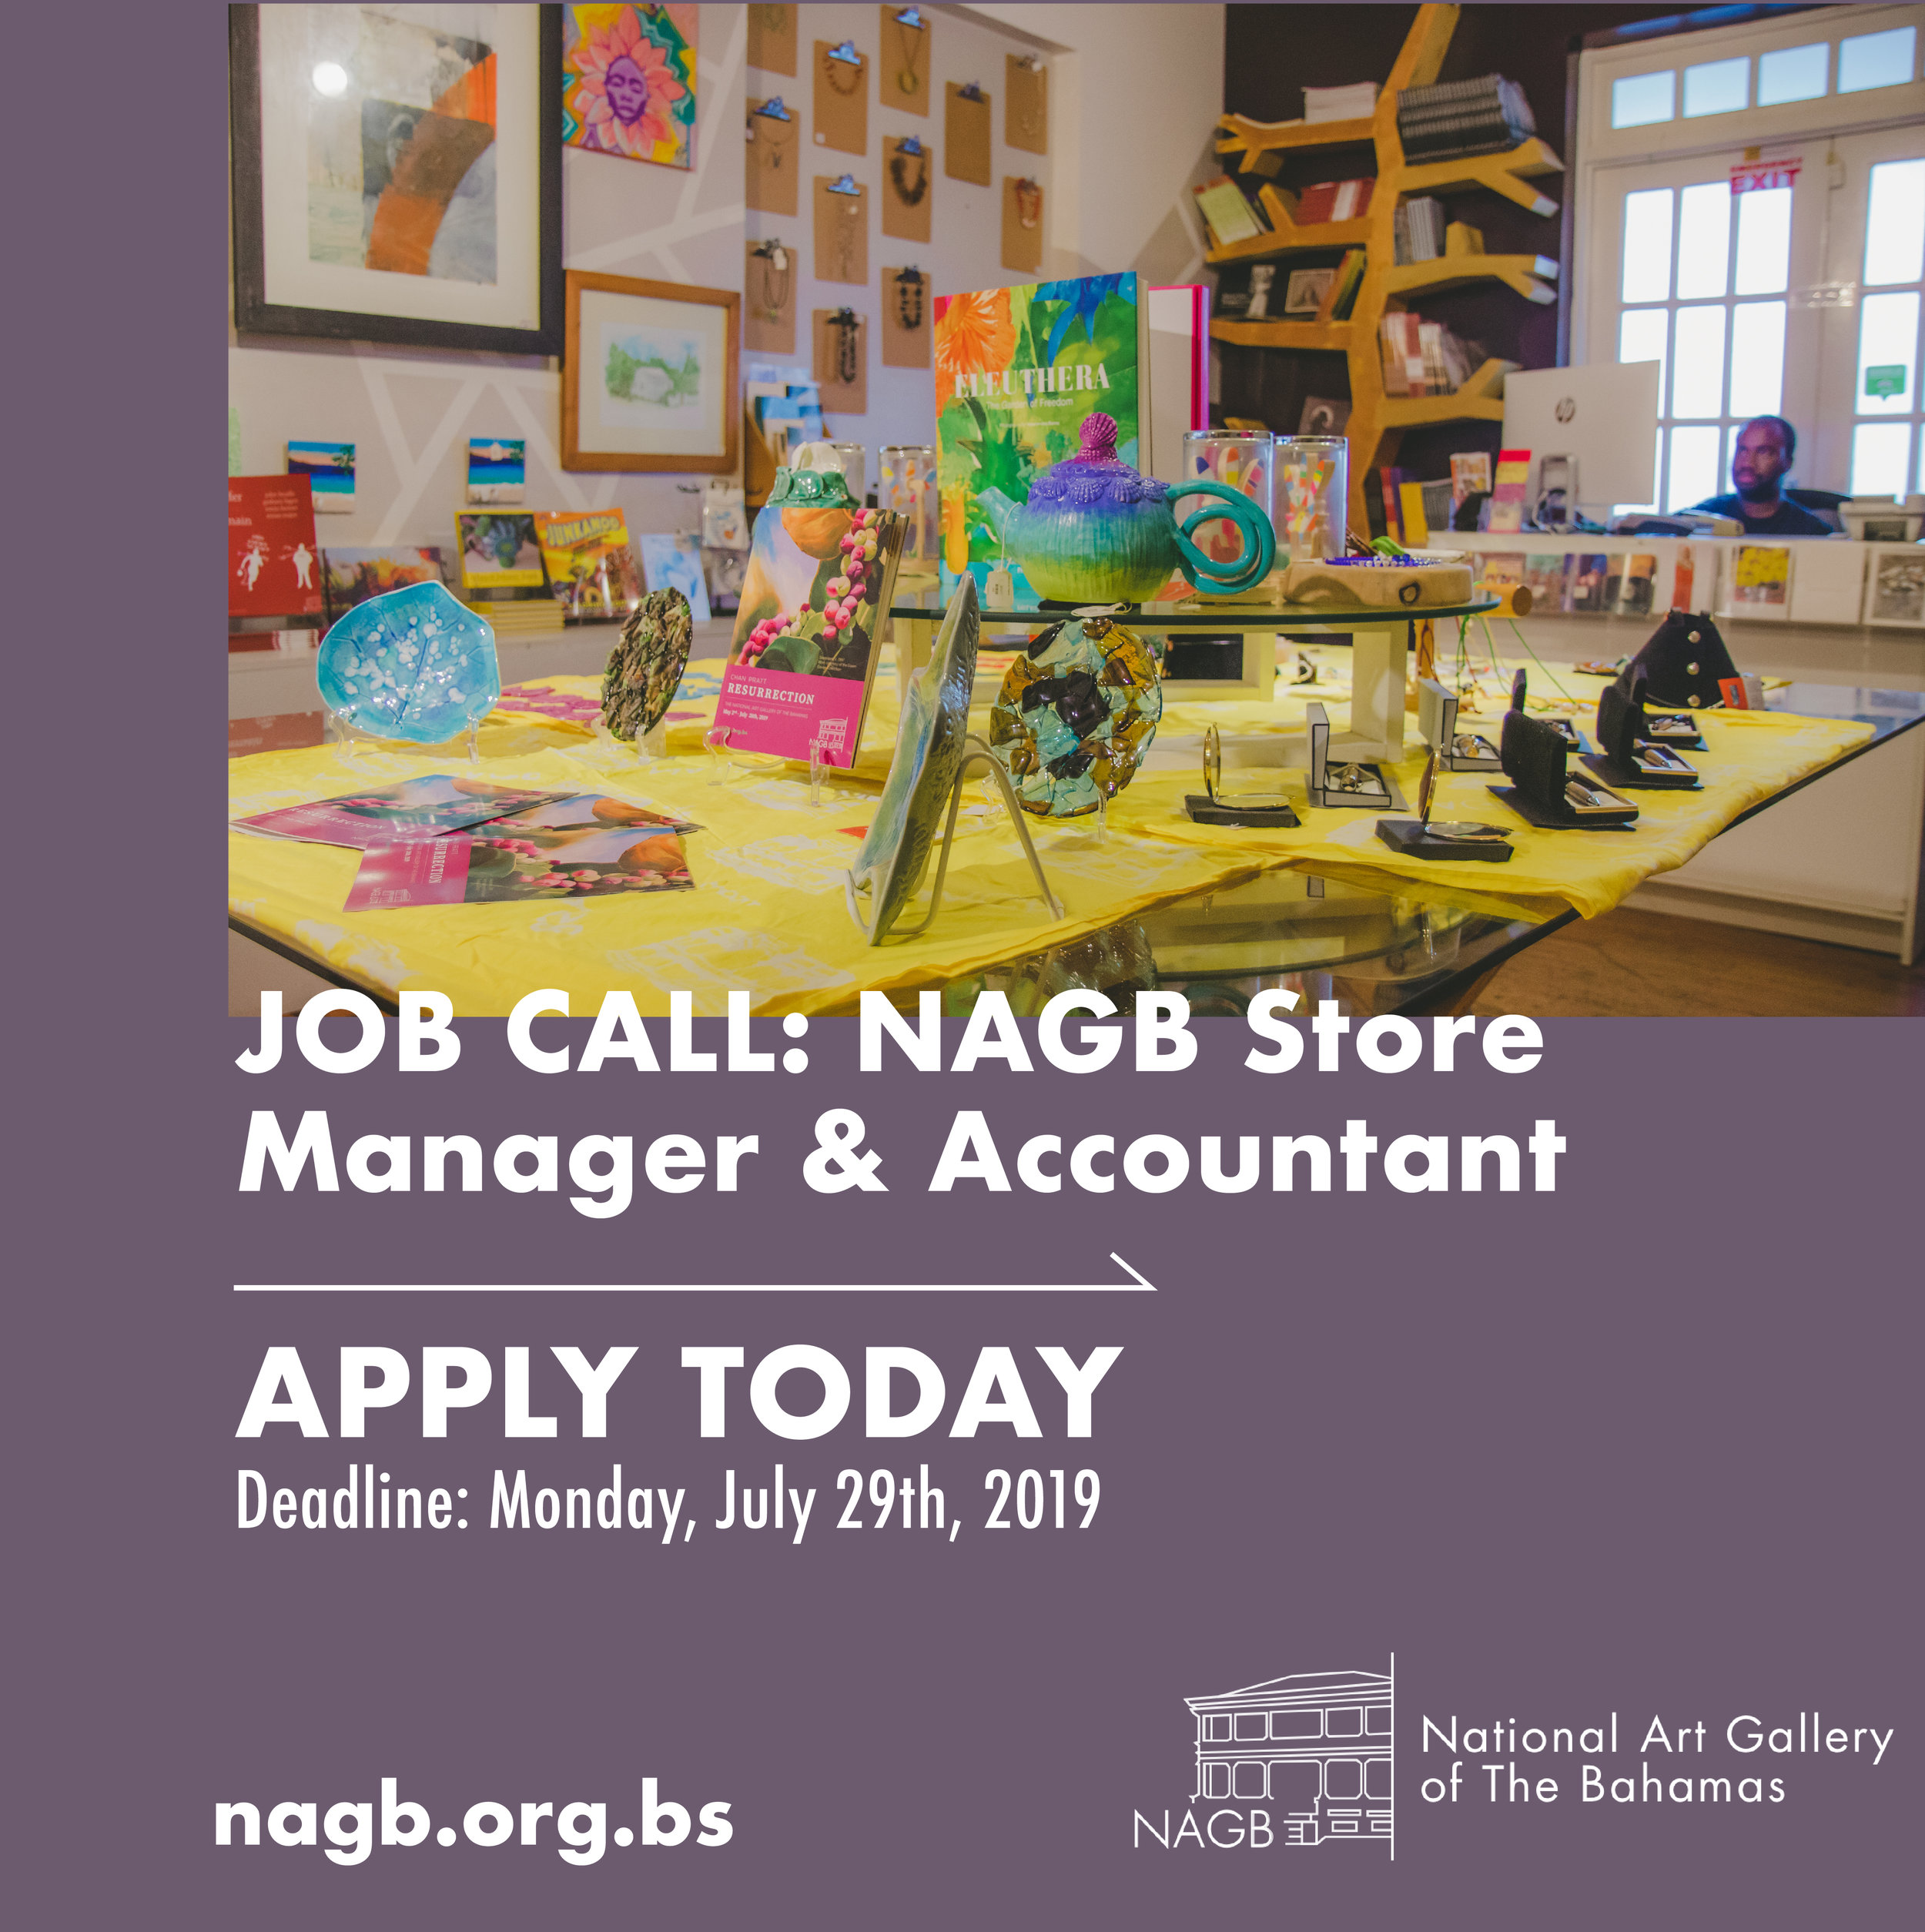 Job_Call_Store_Manager_Square-1.jpg